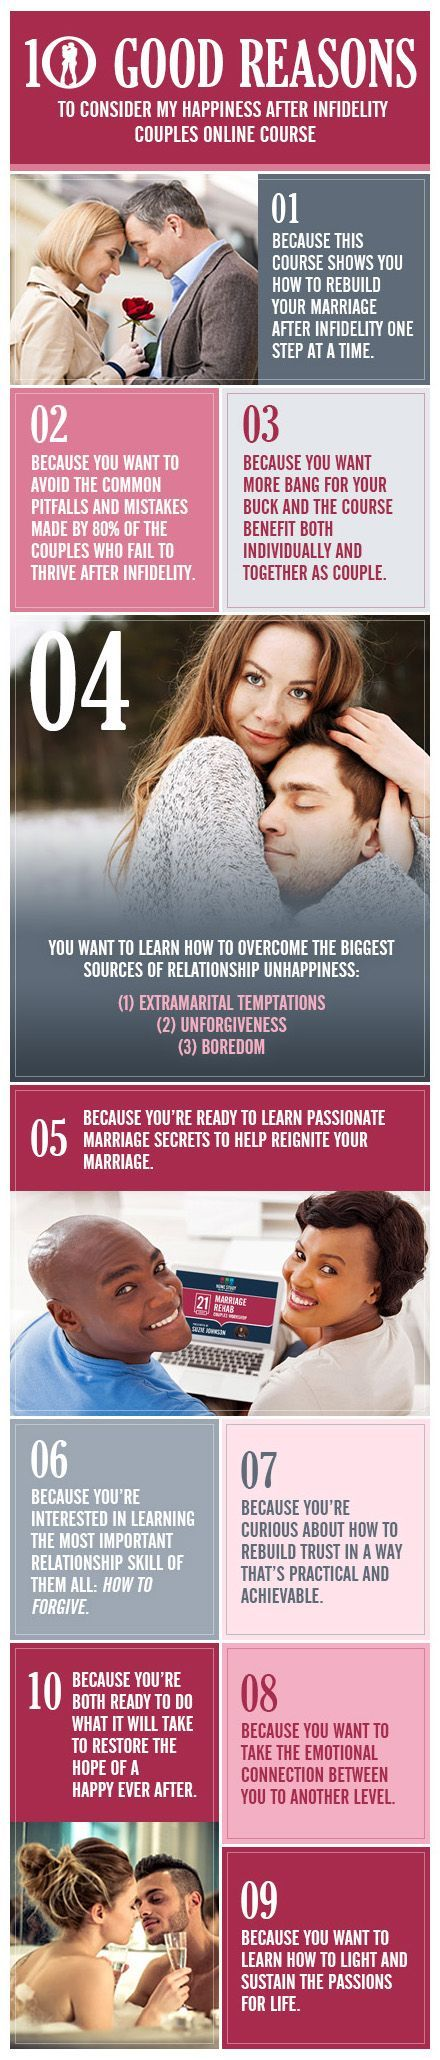 10 Good Reasons Happiness After Infidelity